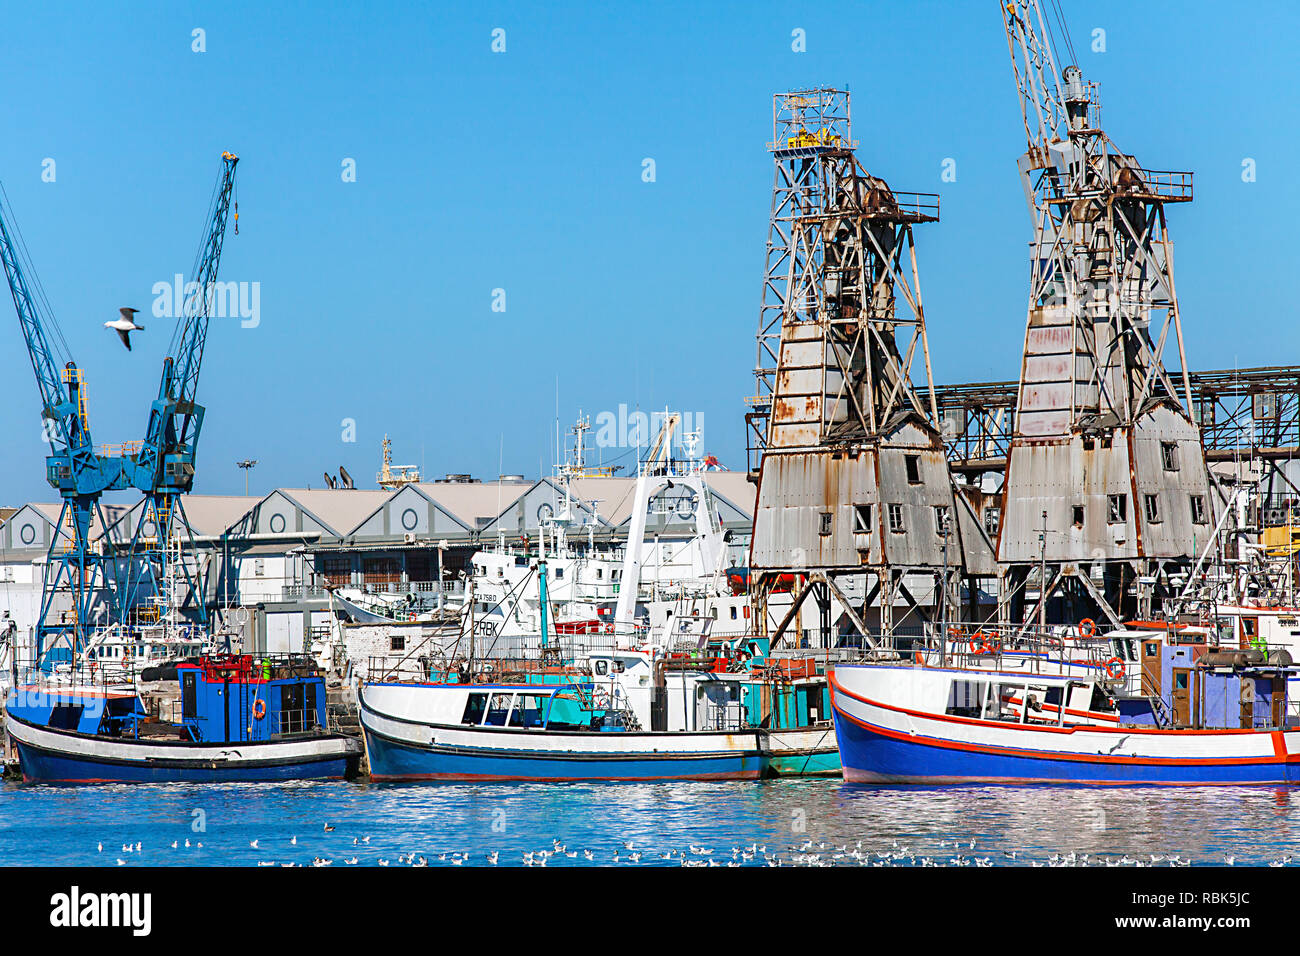 At the waterfront in Cape Town - Stock Image